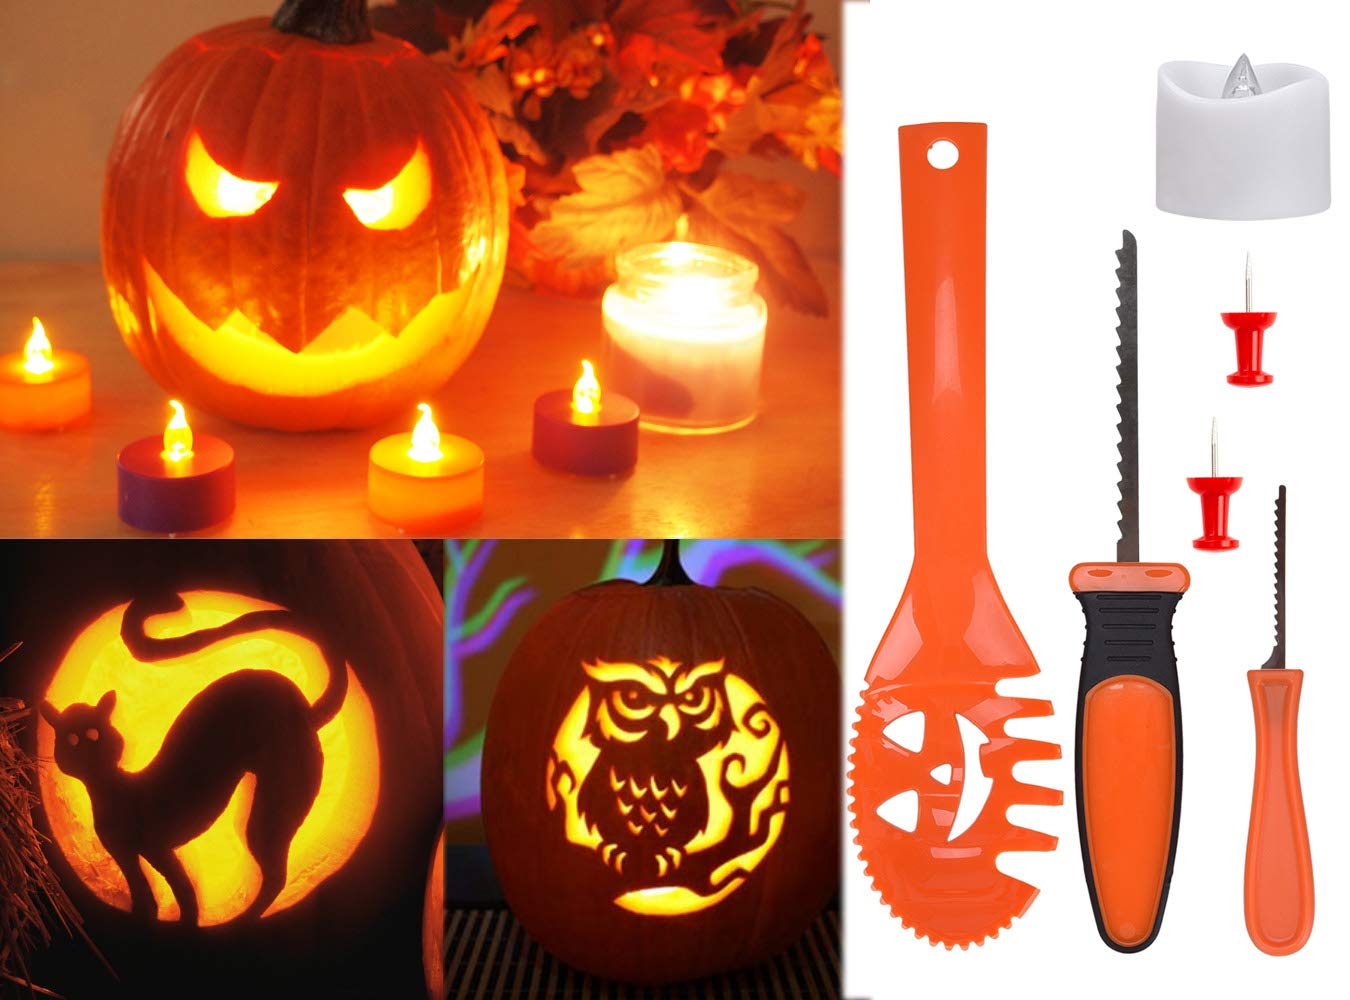 Pumpkin Carving Kit DealKits Professional Pumpkin Tools with Battery-operated Candle and 9 Stencils for Halloween Party Decorations Home Dcor 15 pieces